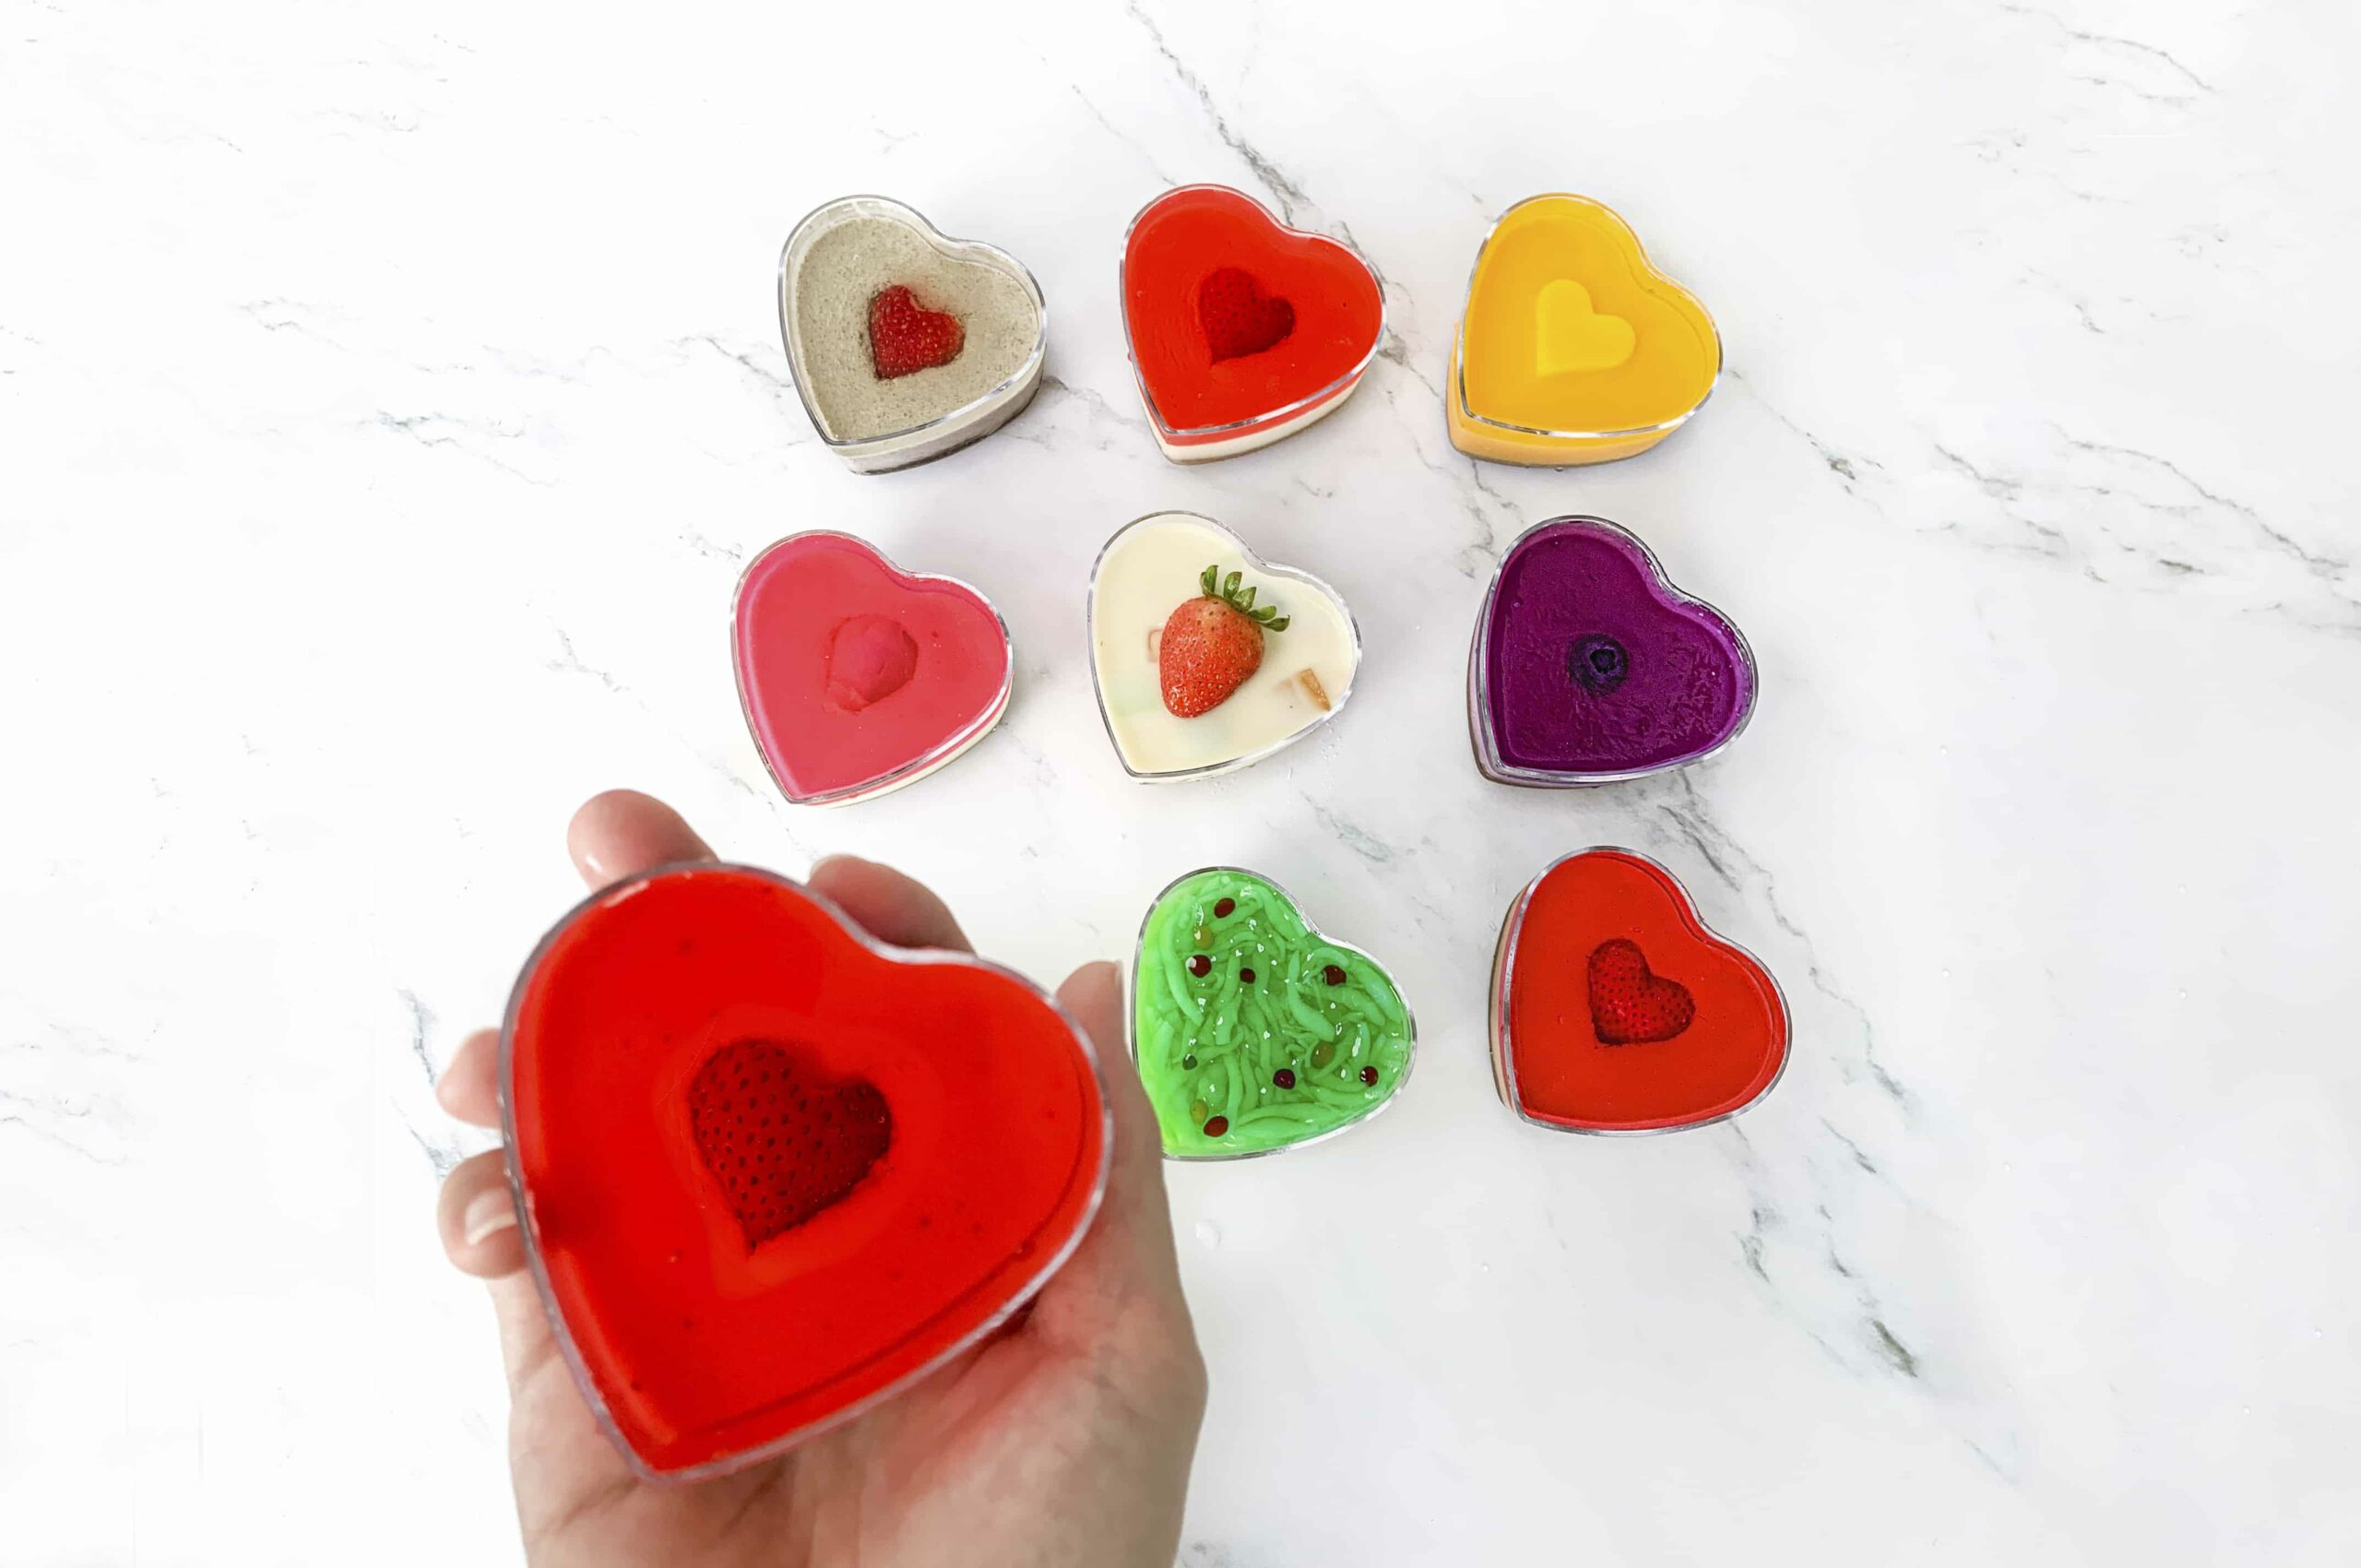 the jelly hearts deal